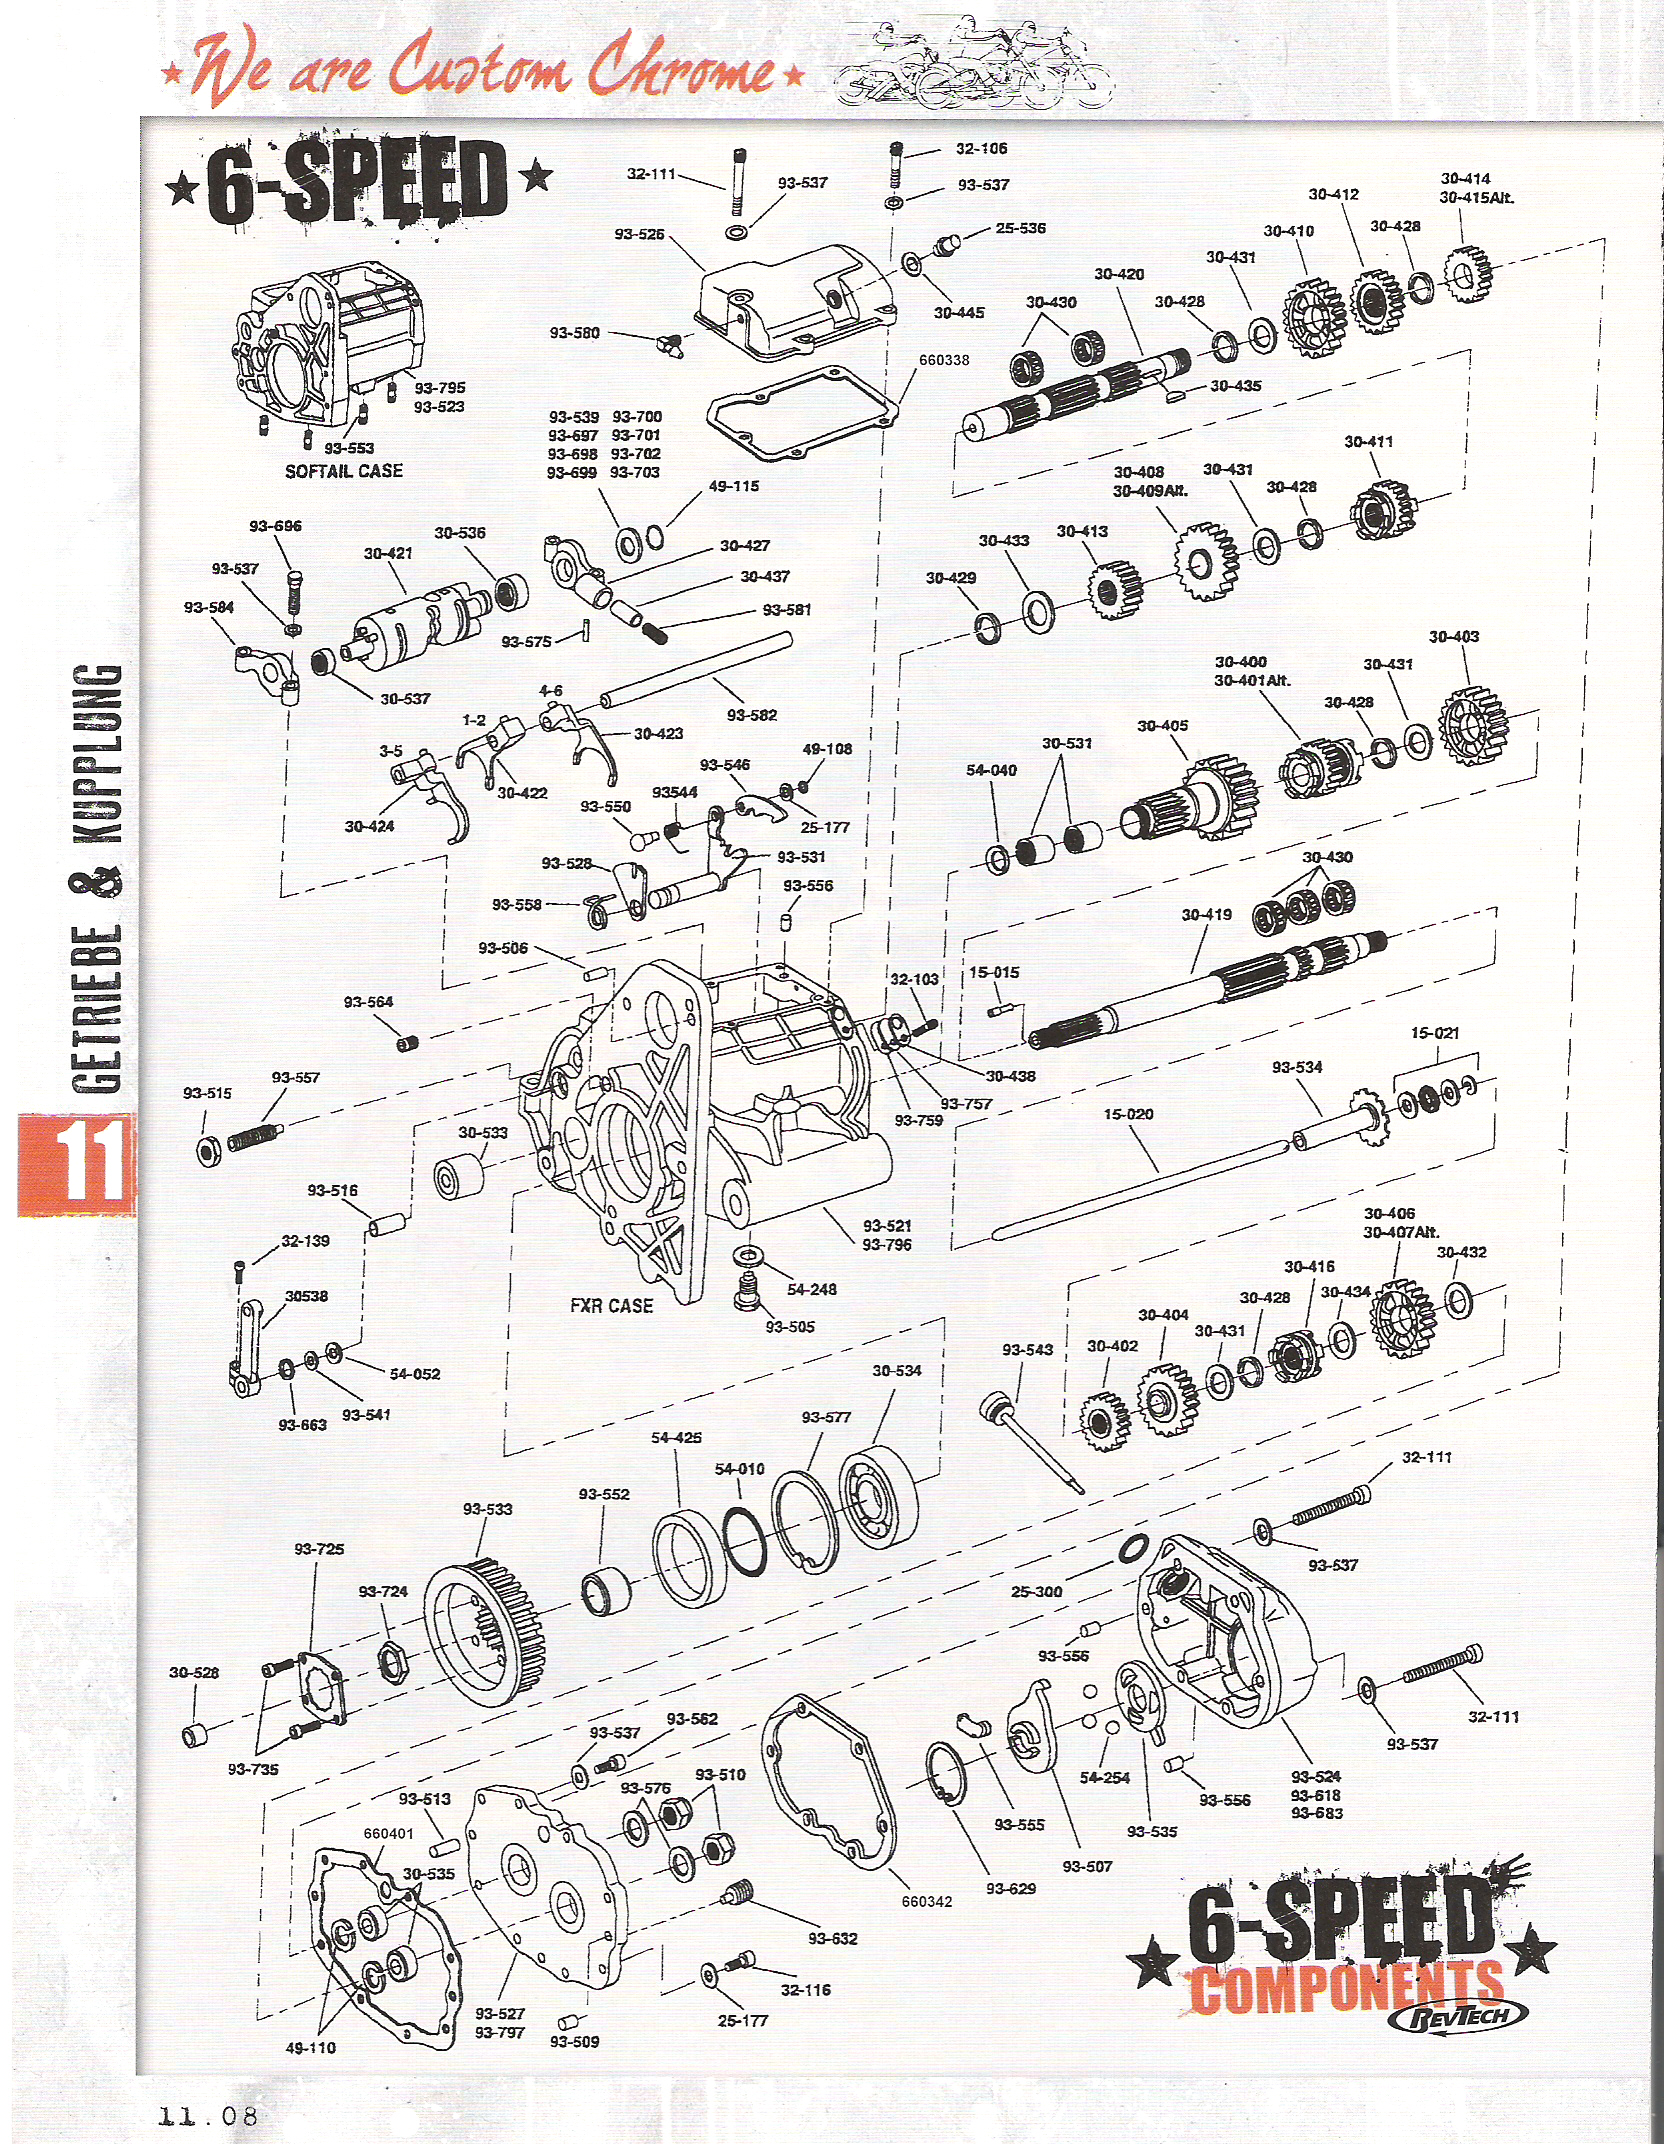 4 Stroke Bicycle Engine Parts also Kitchen Aid Parts as well Maytag Dishwasher Quiet Series 300 Wiring Diagram Maytag Quiet Throughout Maytag Dishwasher Parts Renovation additionally Ac Coupled Inverting  lifier Topology  drain Resistor further Harley Bike Diagram. on electric chopper wiring diagram